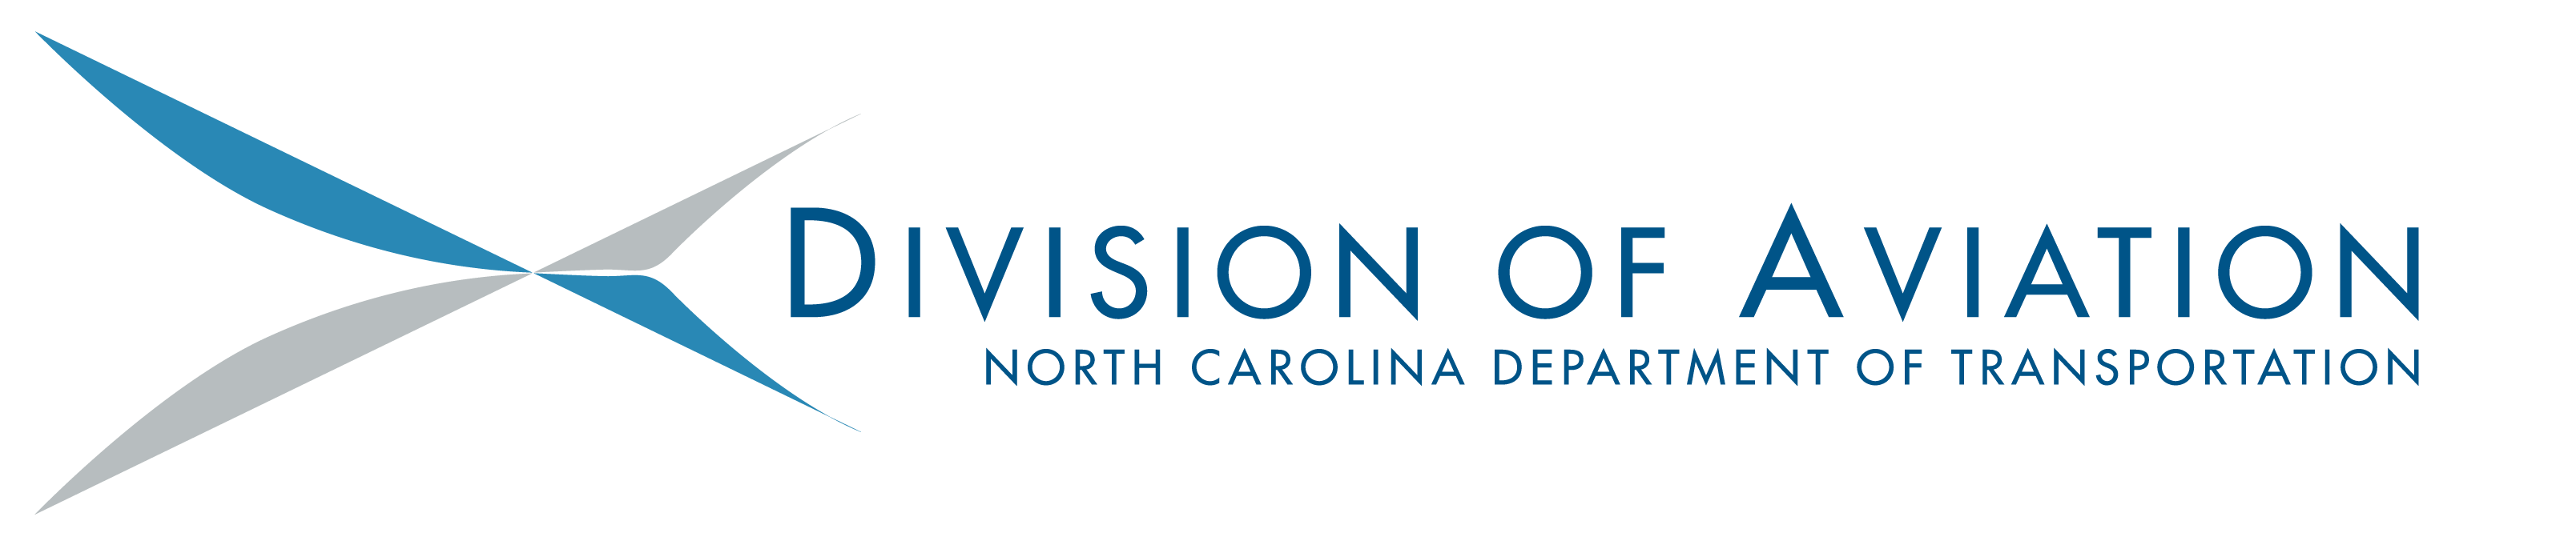 NCDOT Division of Aviation logo